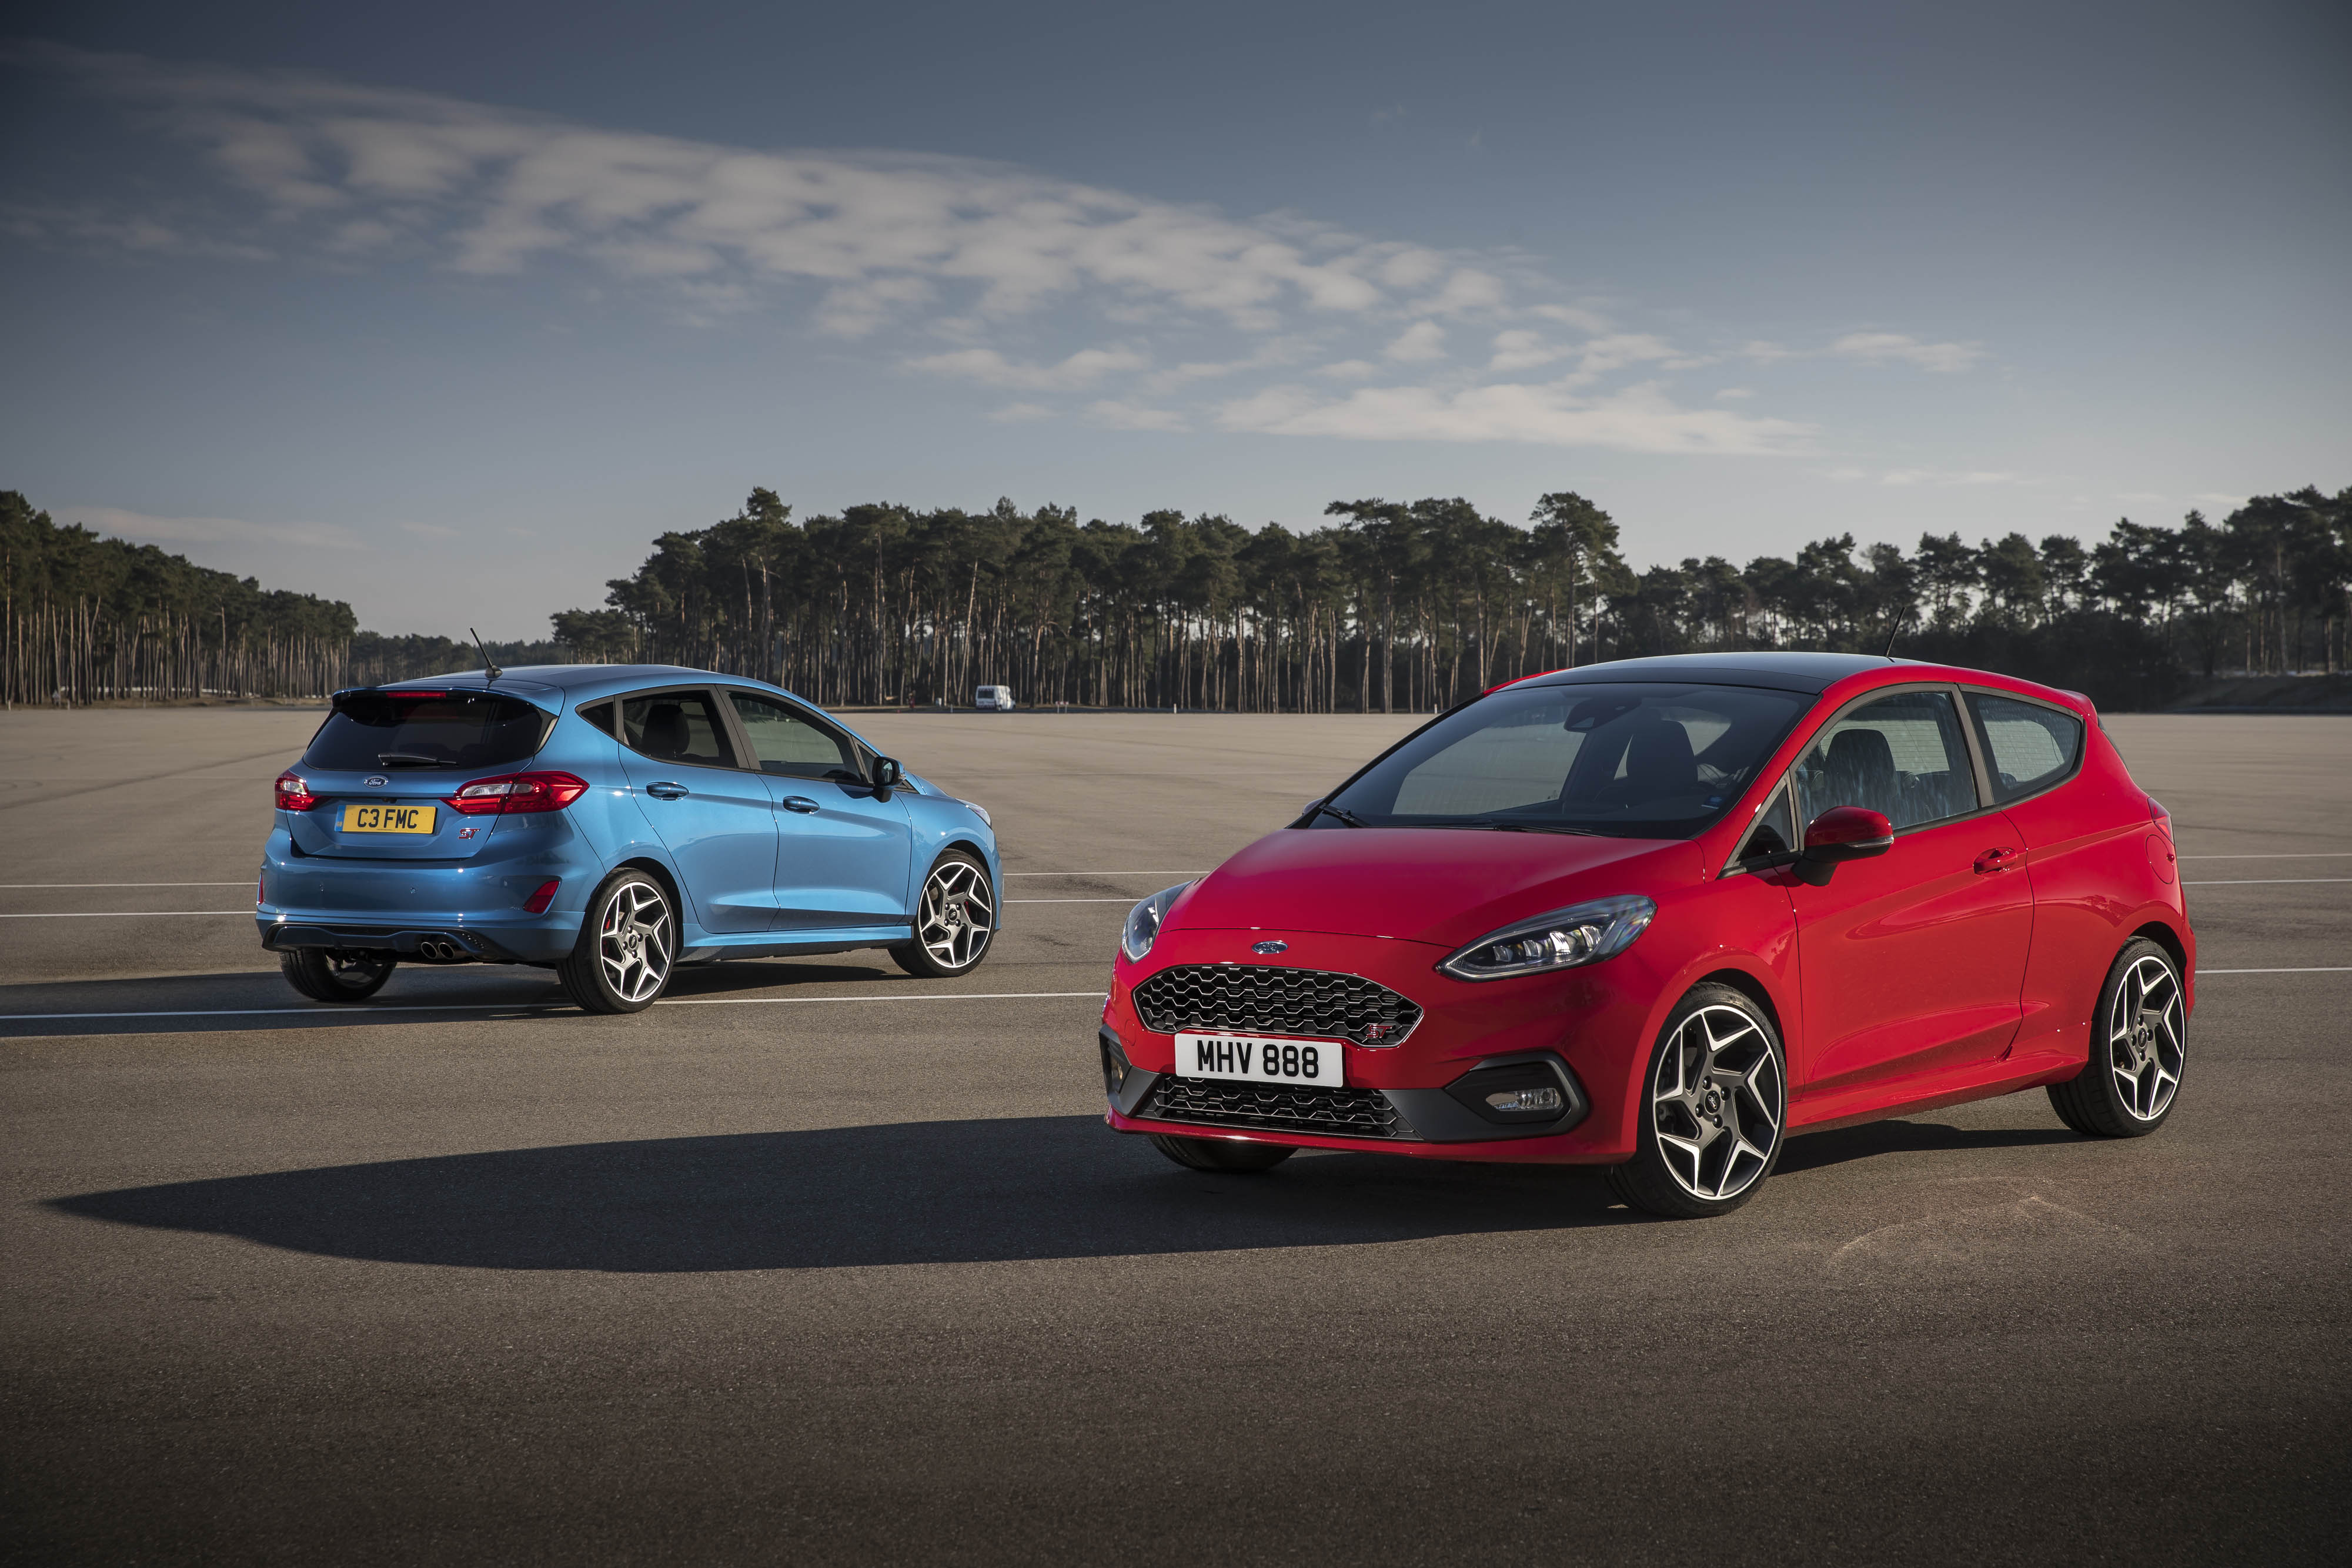 2018 ford fiesta st price announced starts at eur 22 100 autoevolution. Black Bedroom Furniture Sets. Home Design Ideas